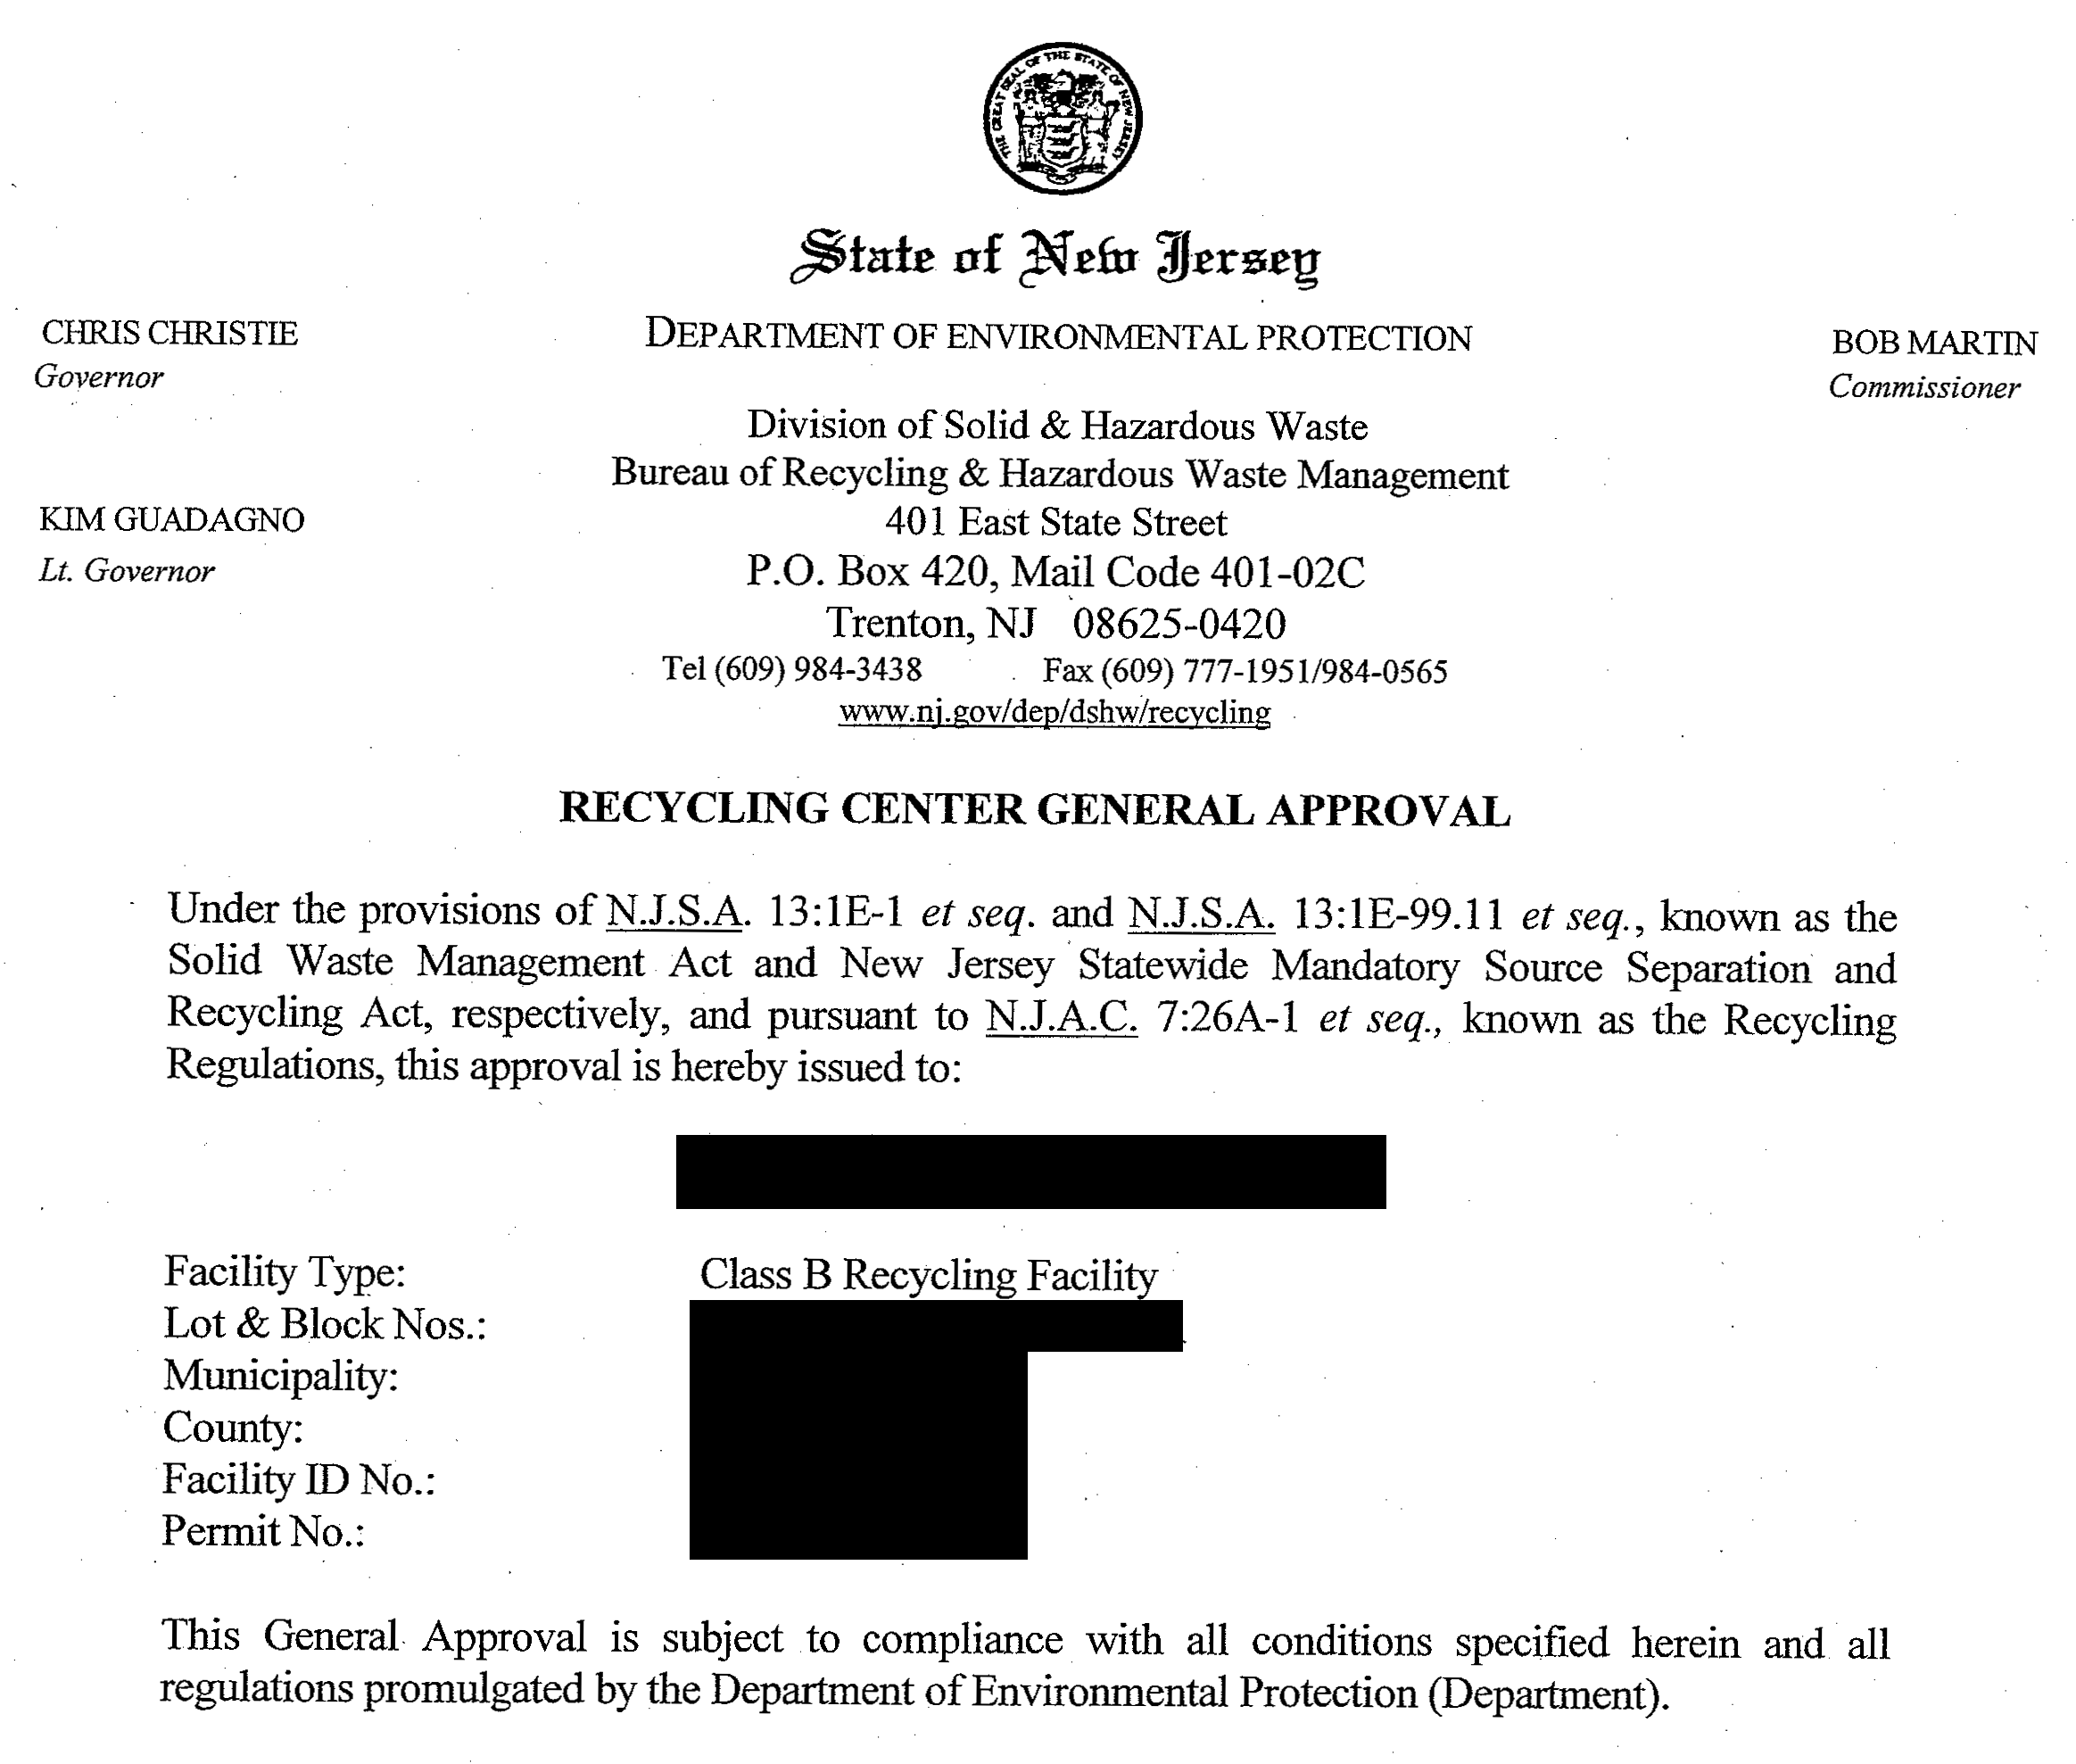 New Jersey Recycling Approvals